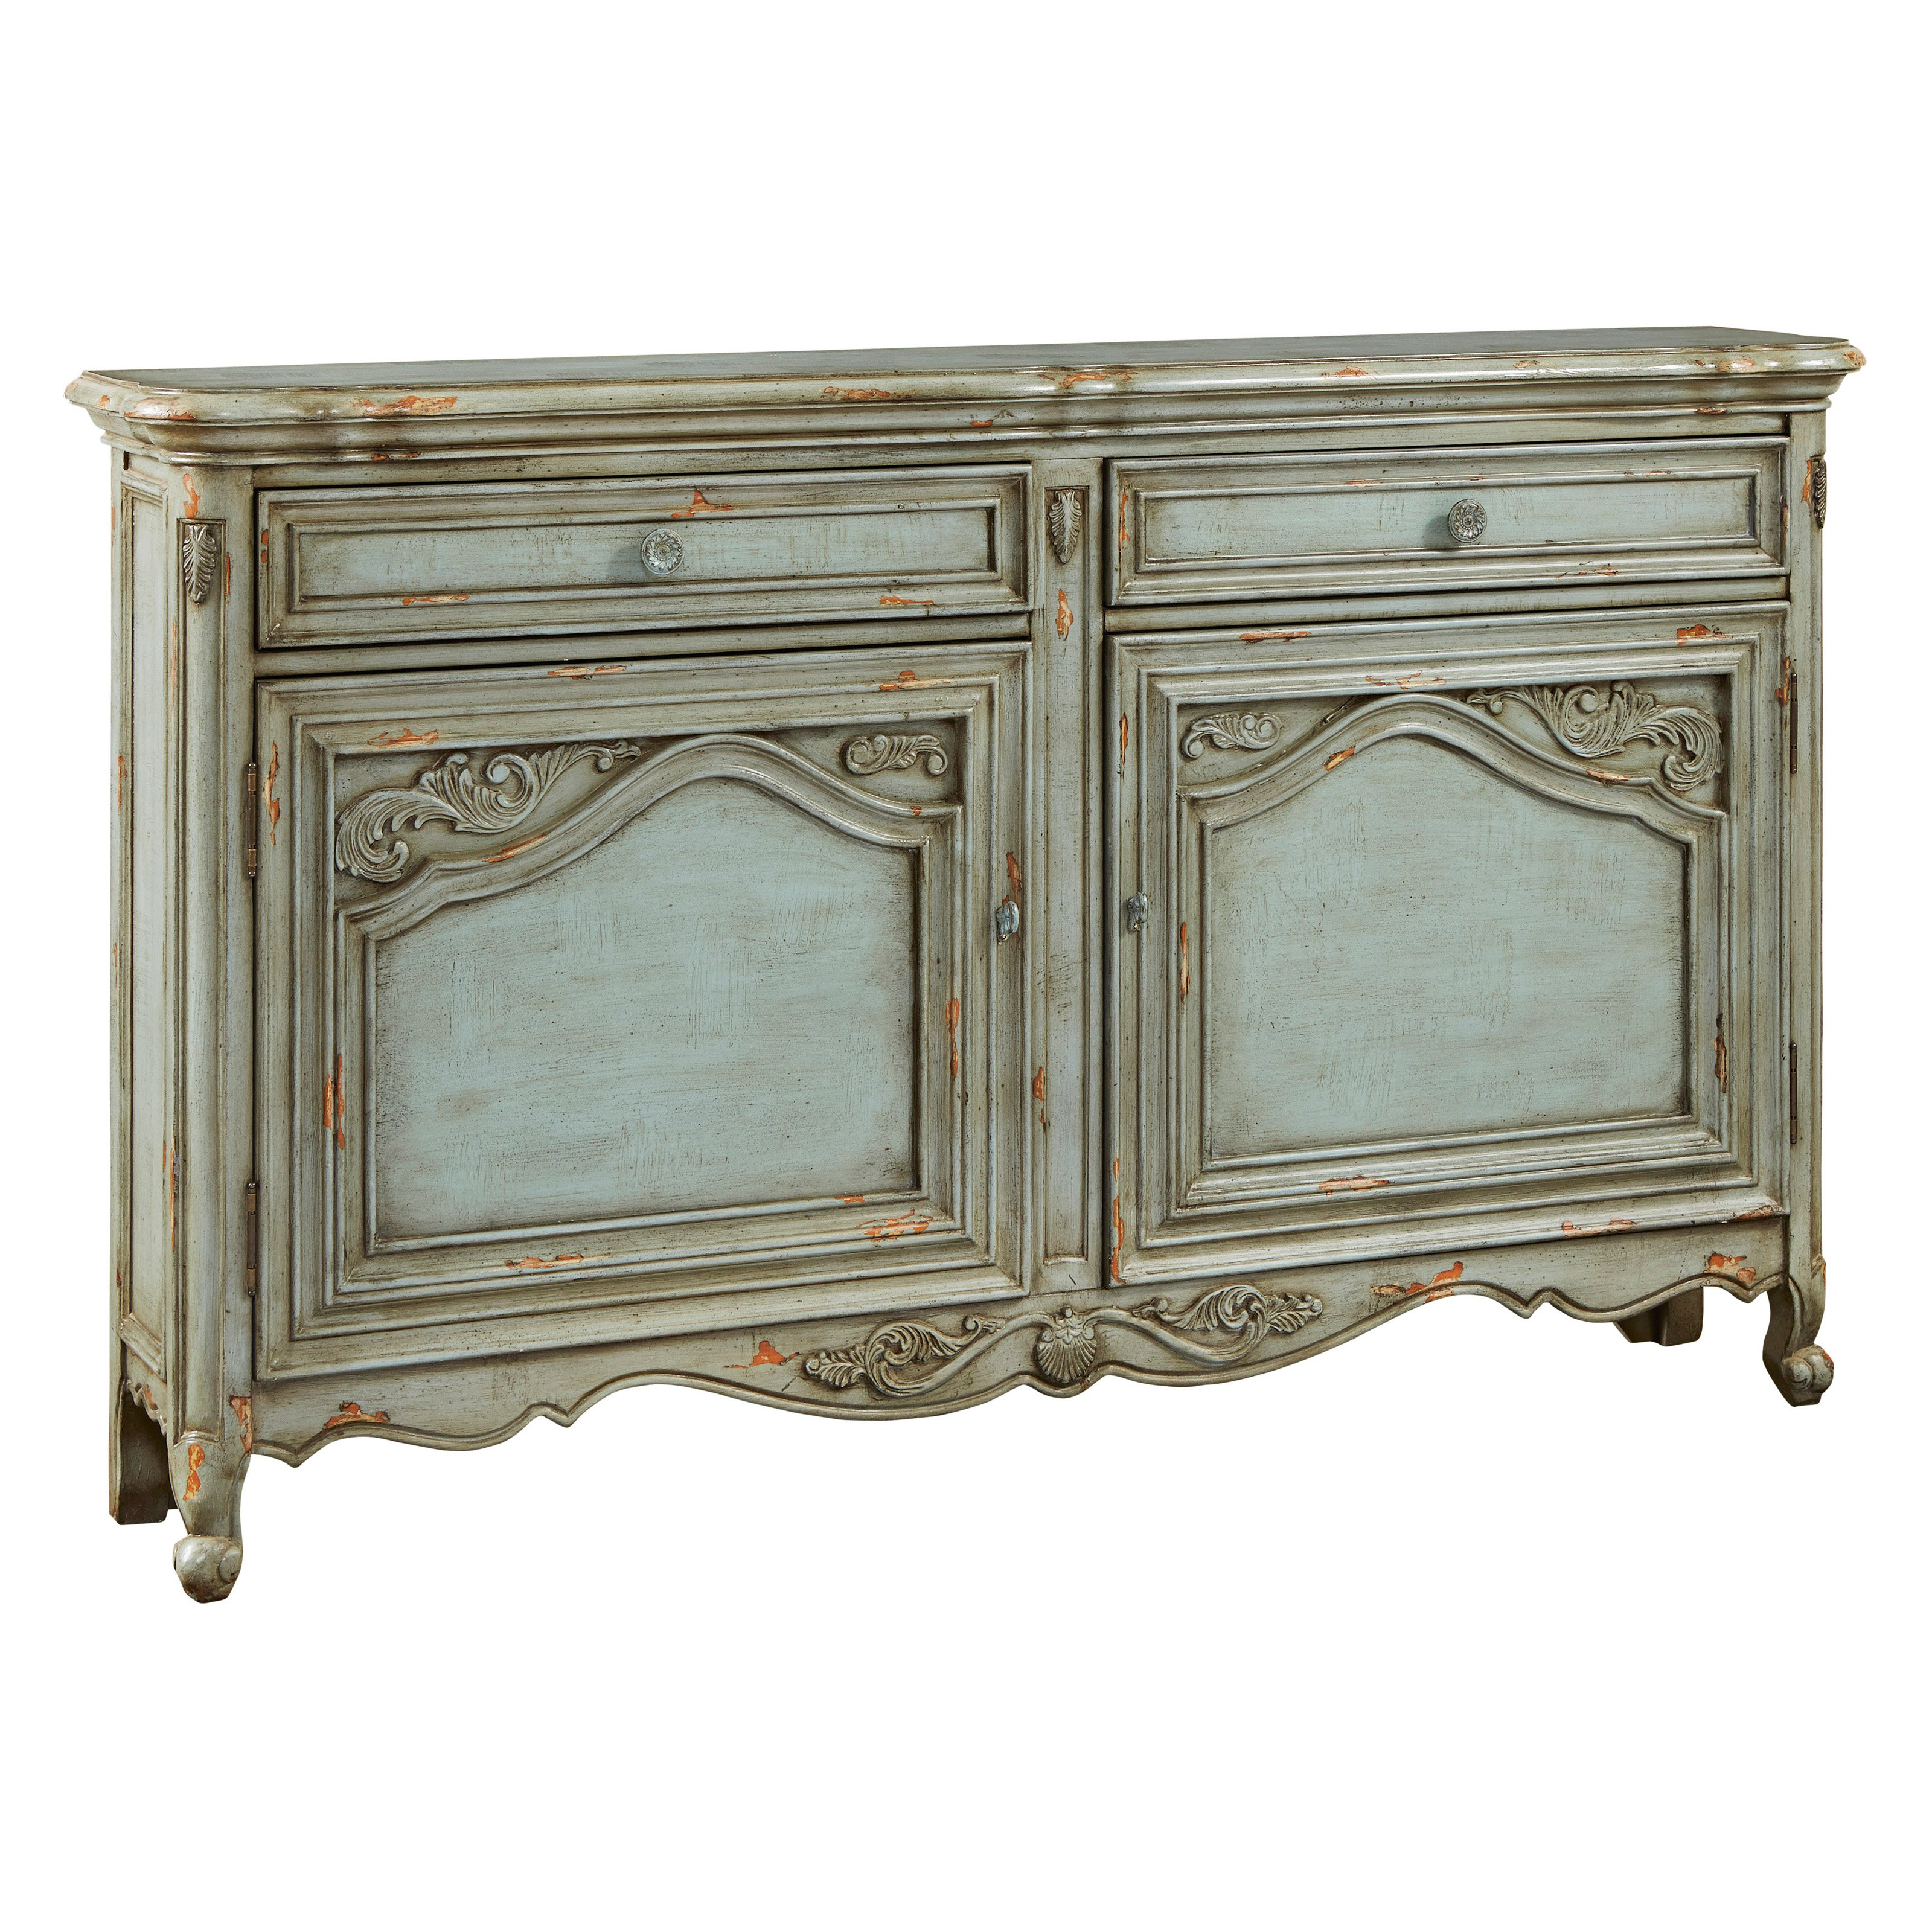 Pulaski Aged Russelle Heirloom Credenza by R2H